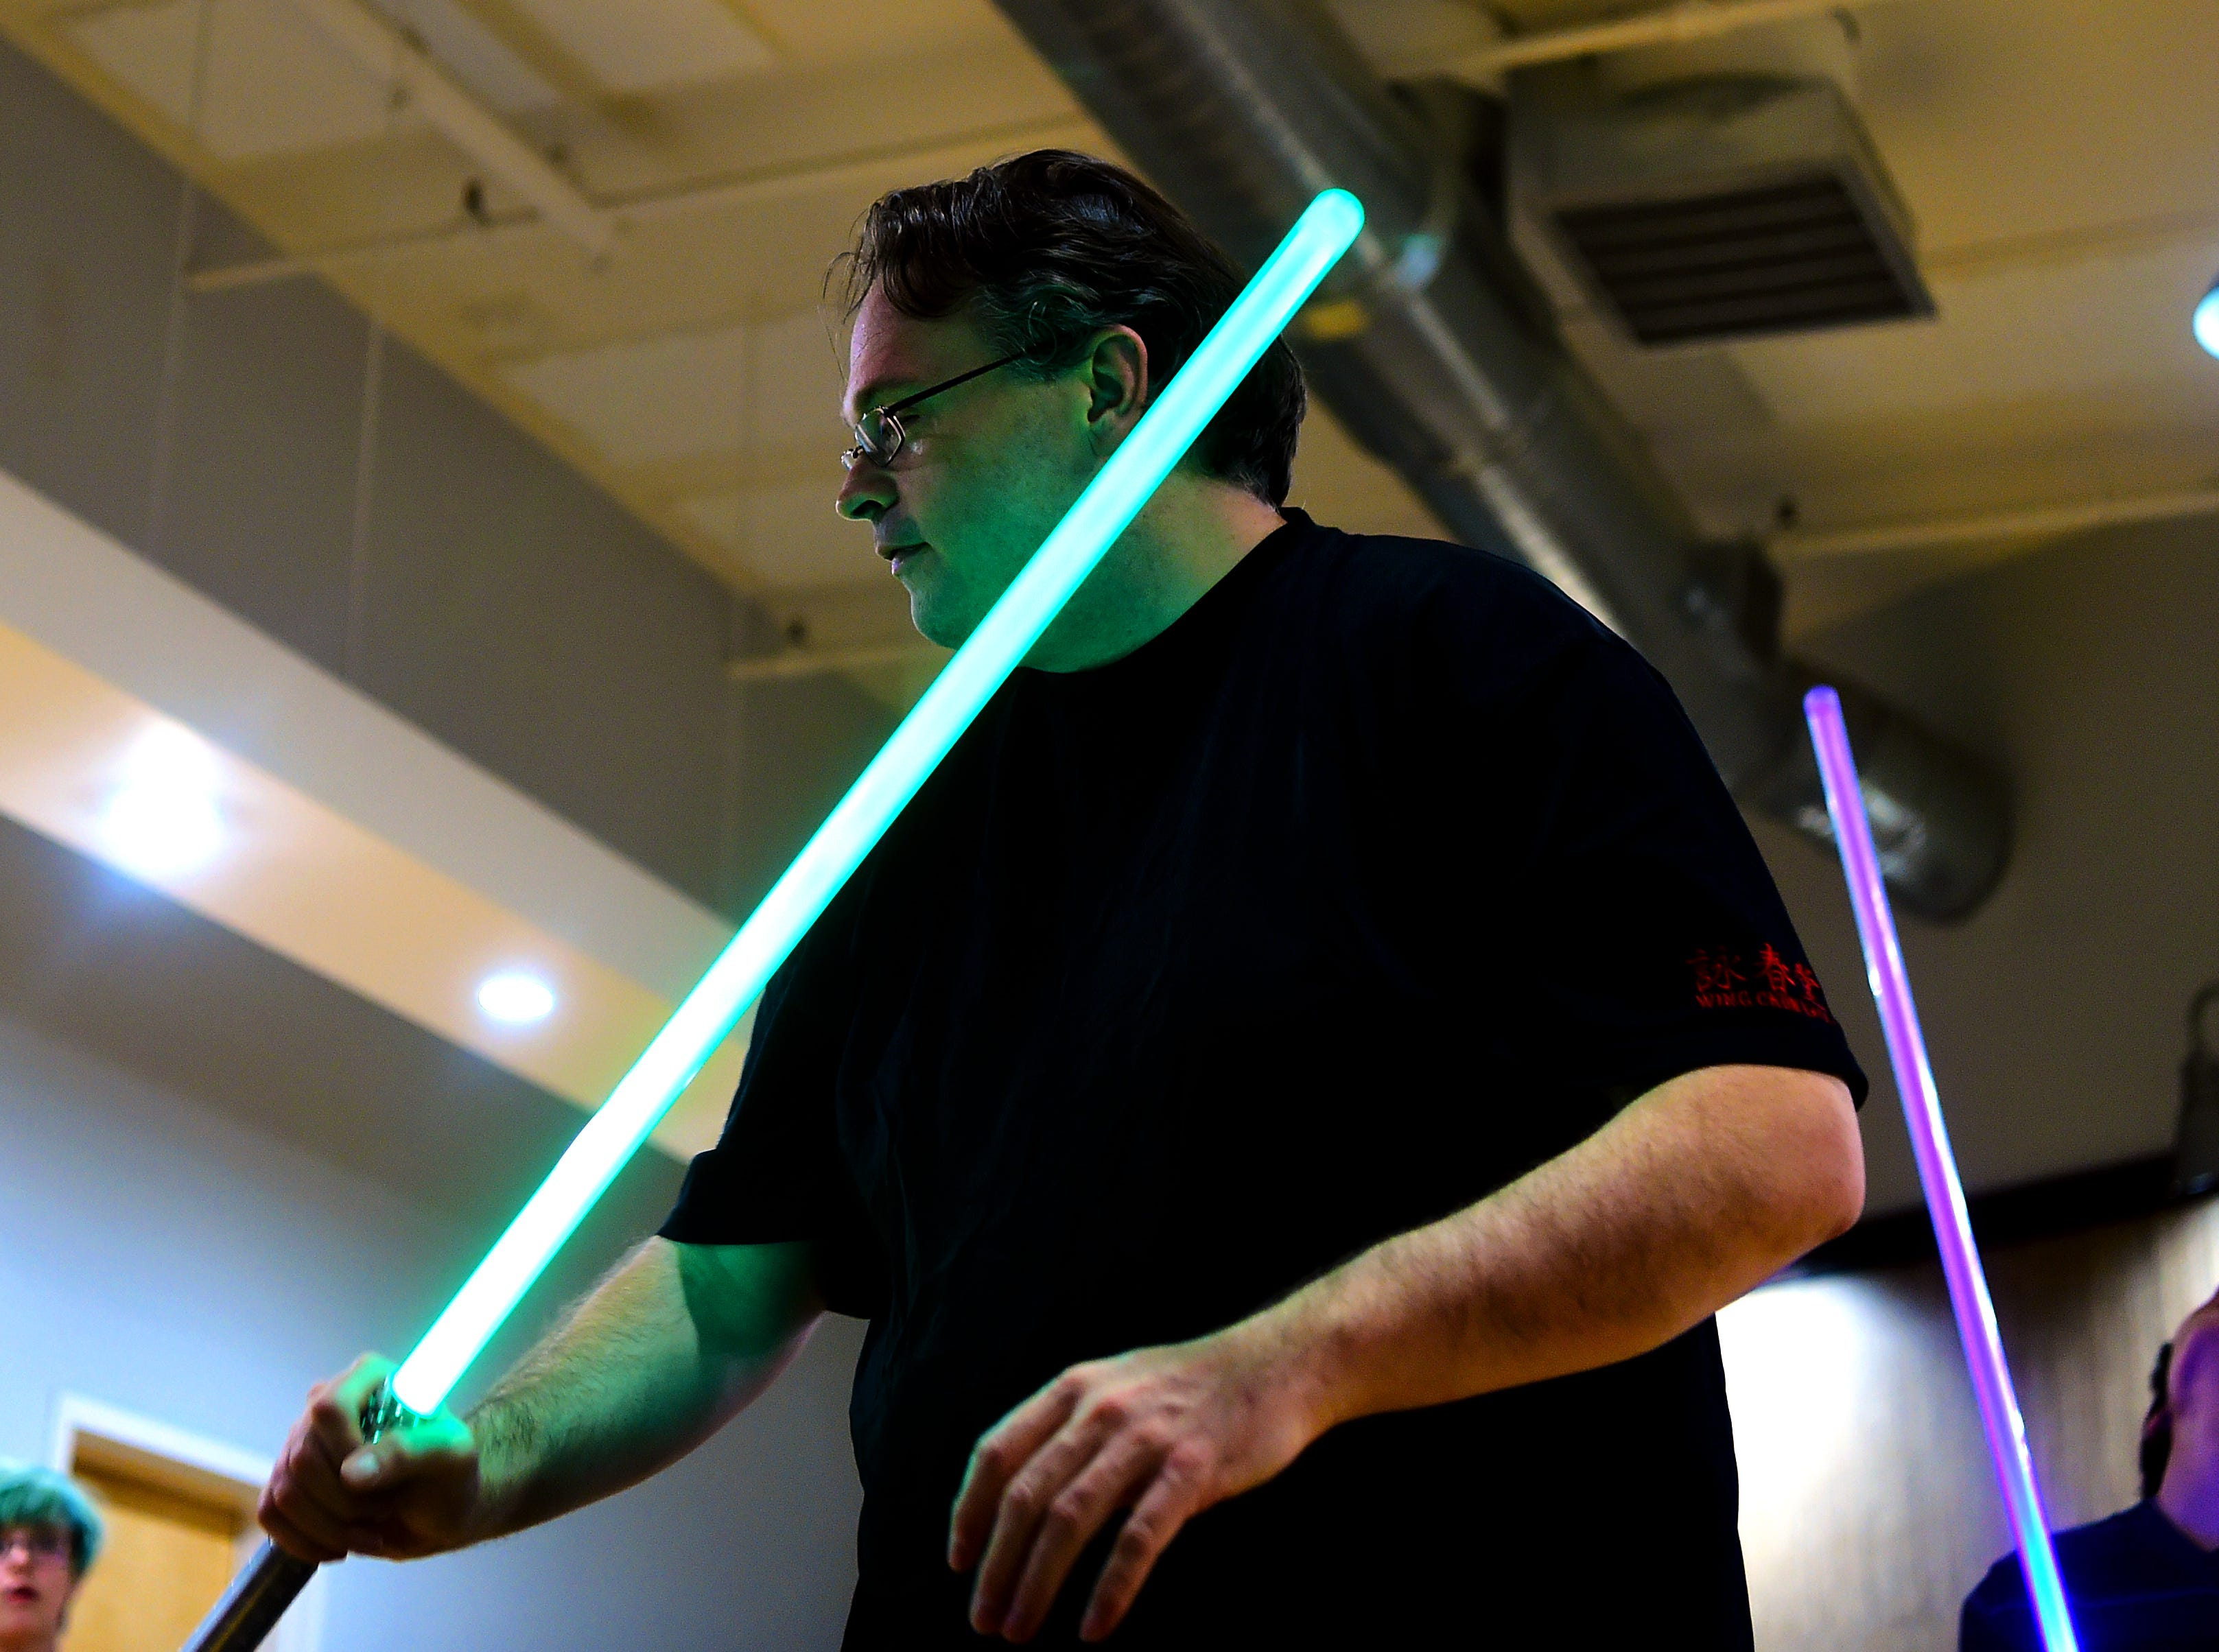 Ben Judkins is the organizer of the Ithaca Sabers. The group approaches lightsaber combat as a martial art and meets weekly at Centerline Fitness & Martial Arts in Ithaca.  February 4, 2019.